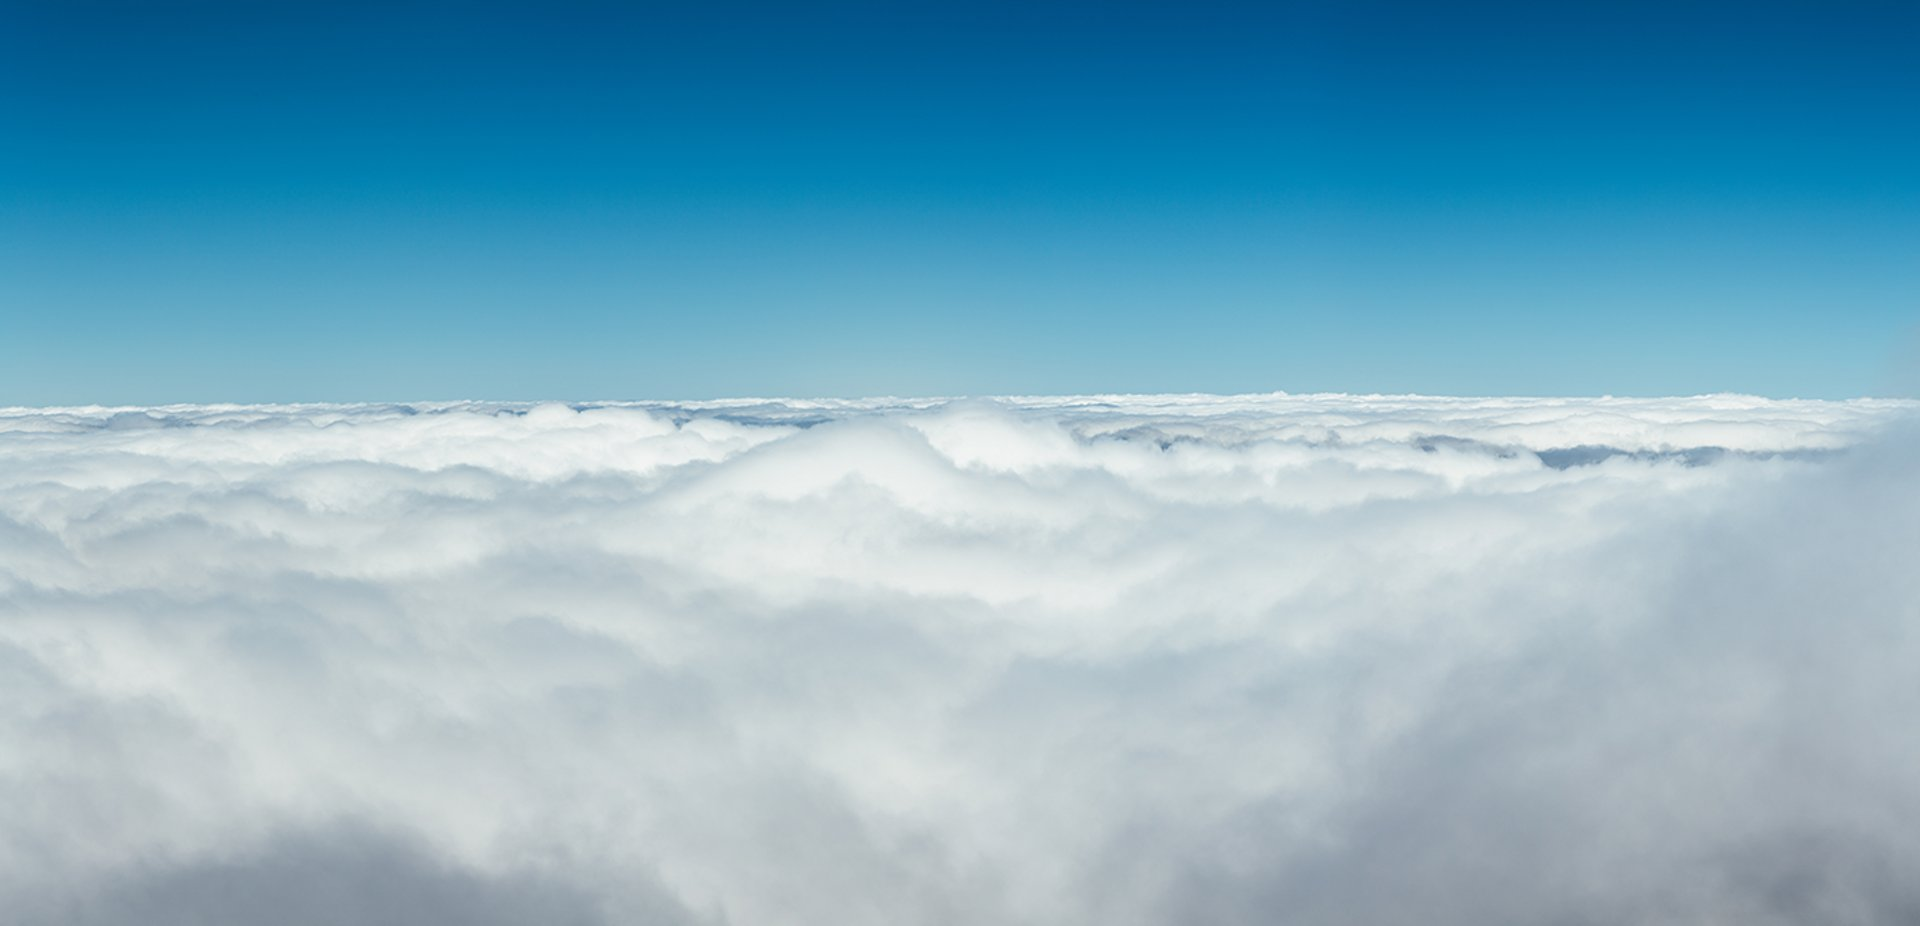 High above white fluffy clouds.